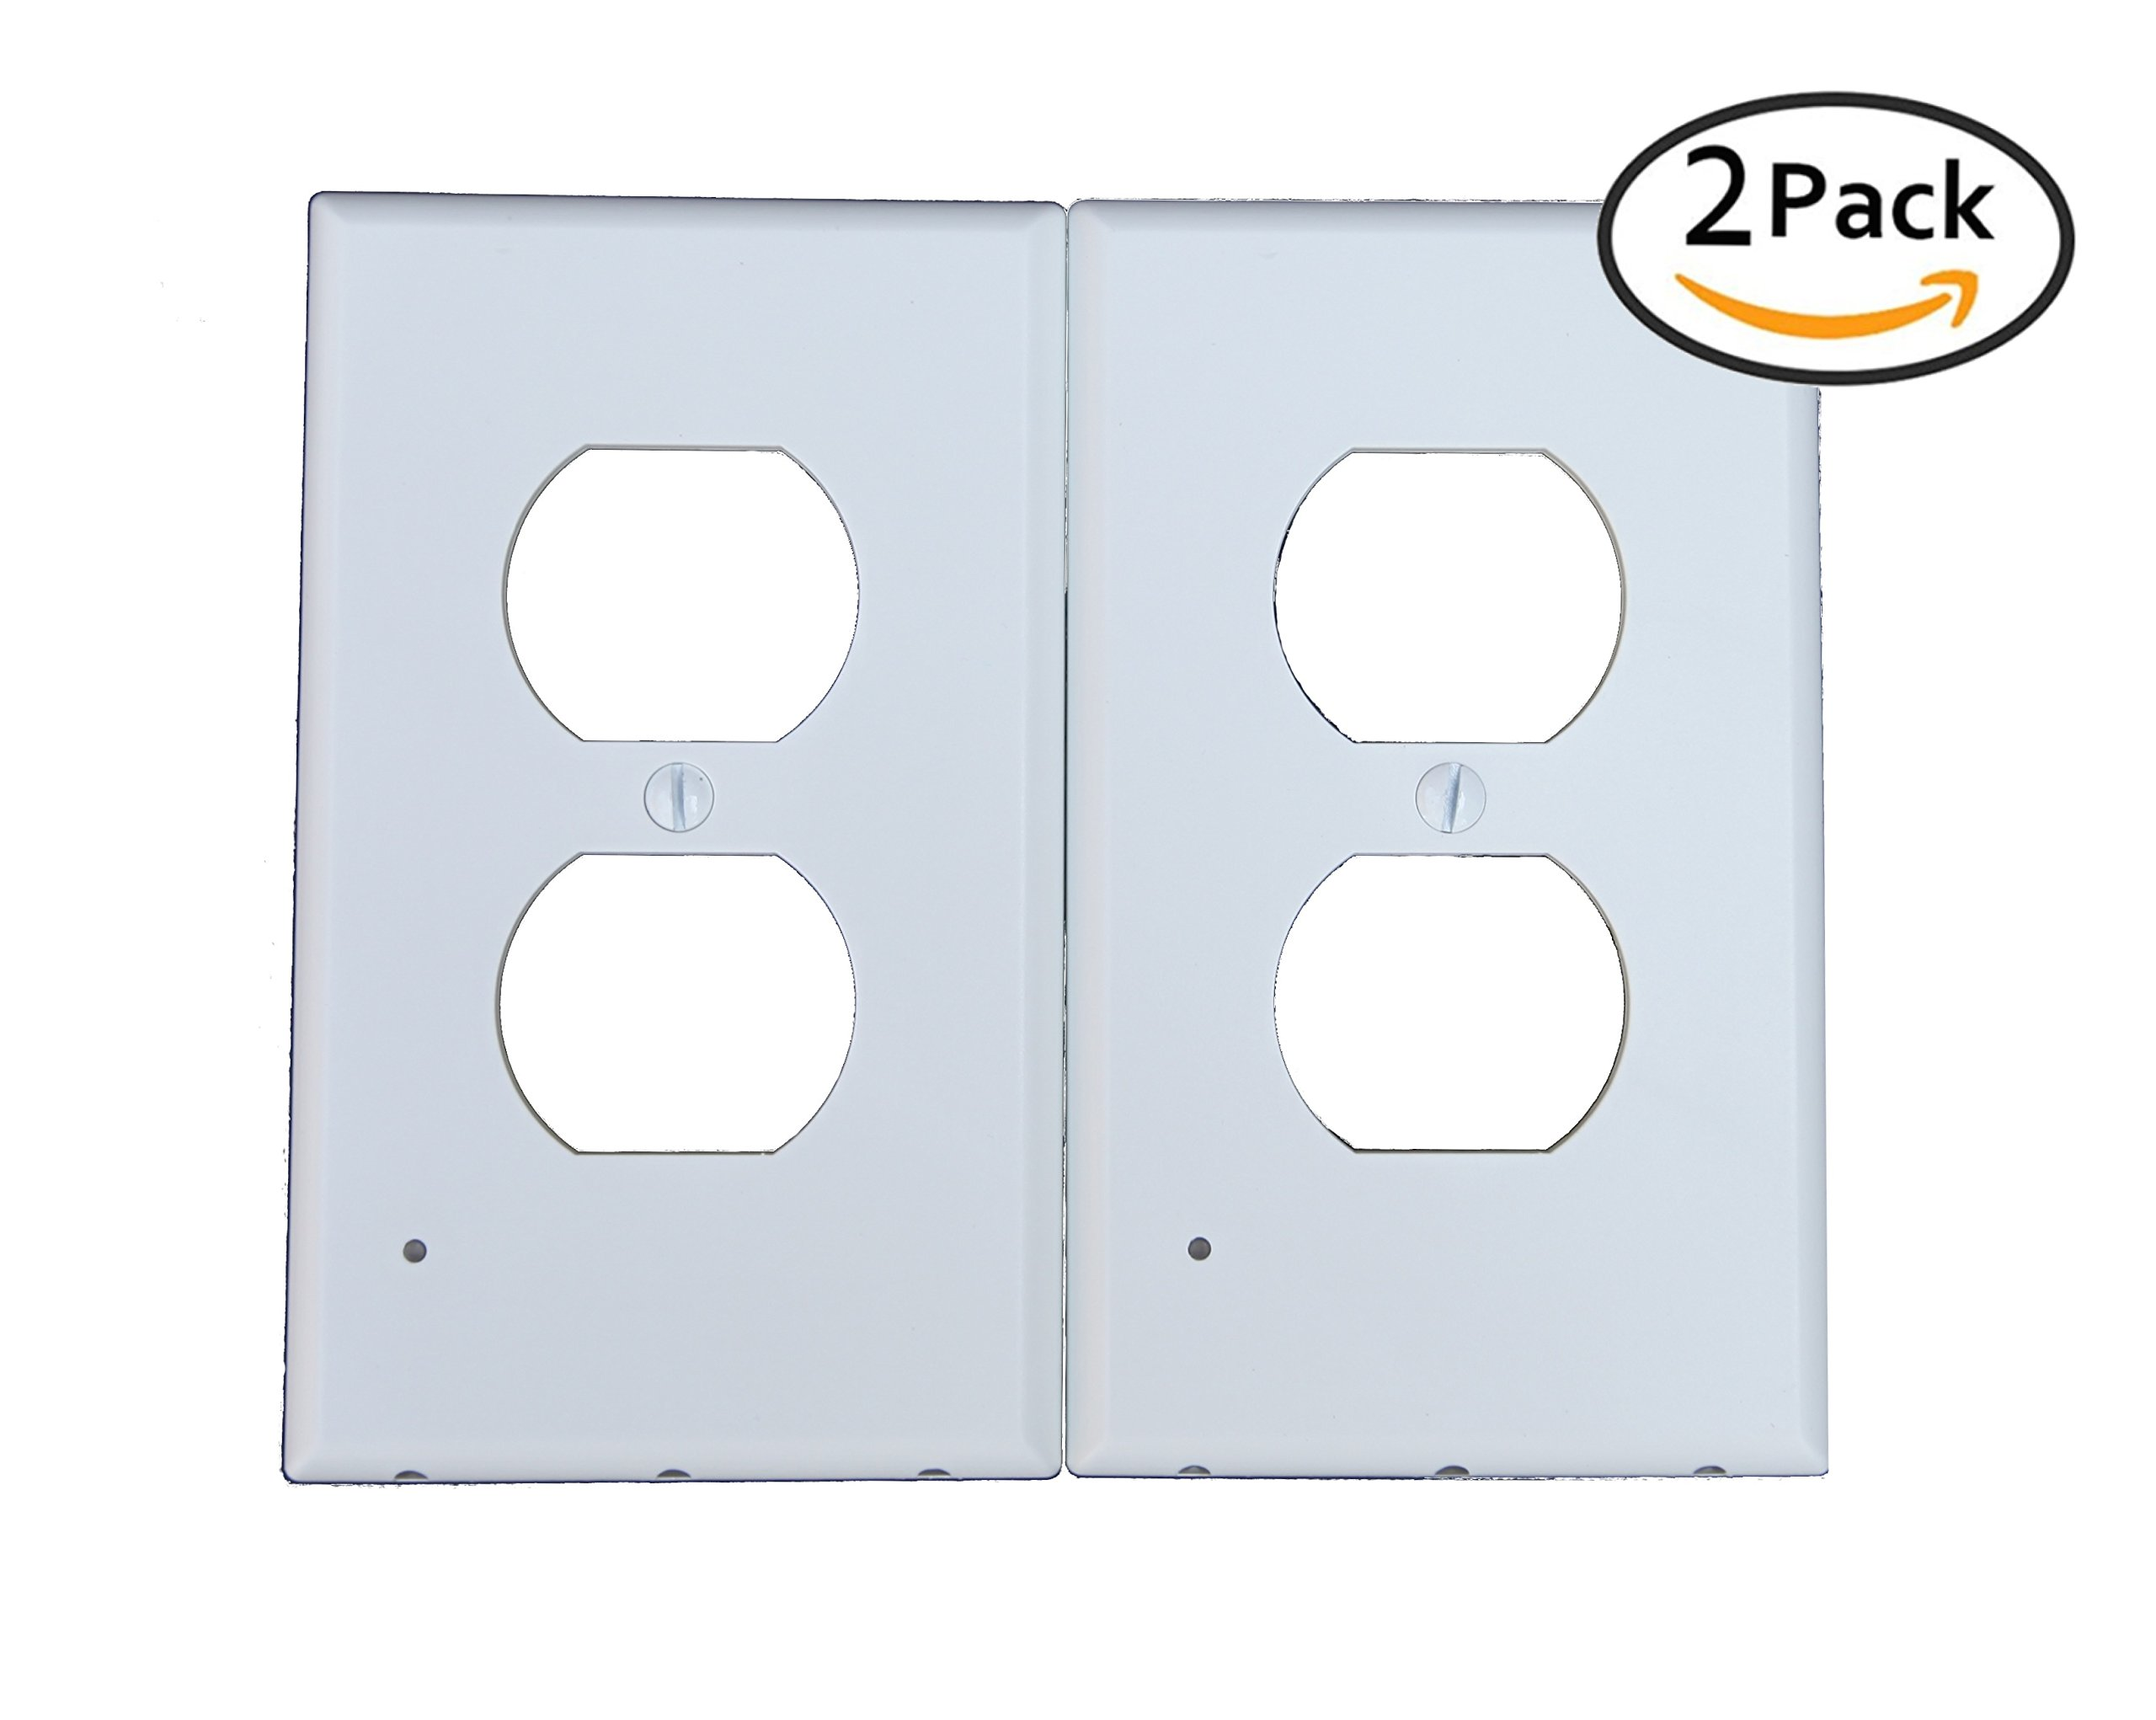 2 pack LED Night Light Outlet Covers - Wall Plate - NEW 2018 DESIGN- Energy Efficient - Automatic Brightness Sensor - No Wires/Batteries - Home, Kitchen, Bath, Safety - Duplex, White - Easy Install